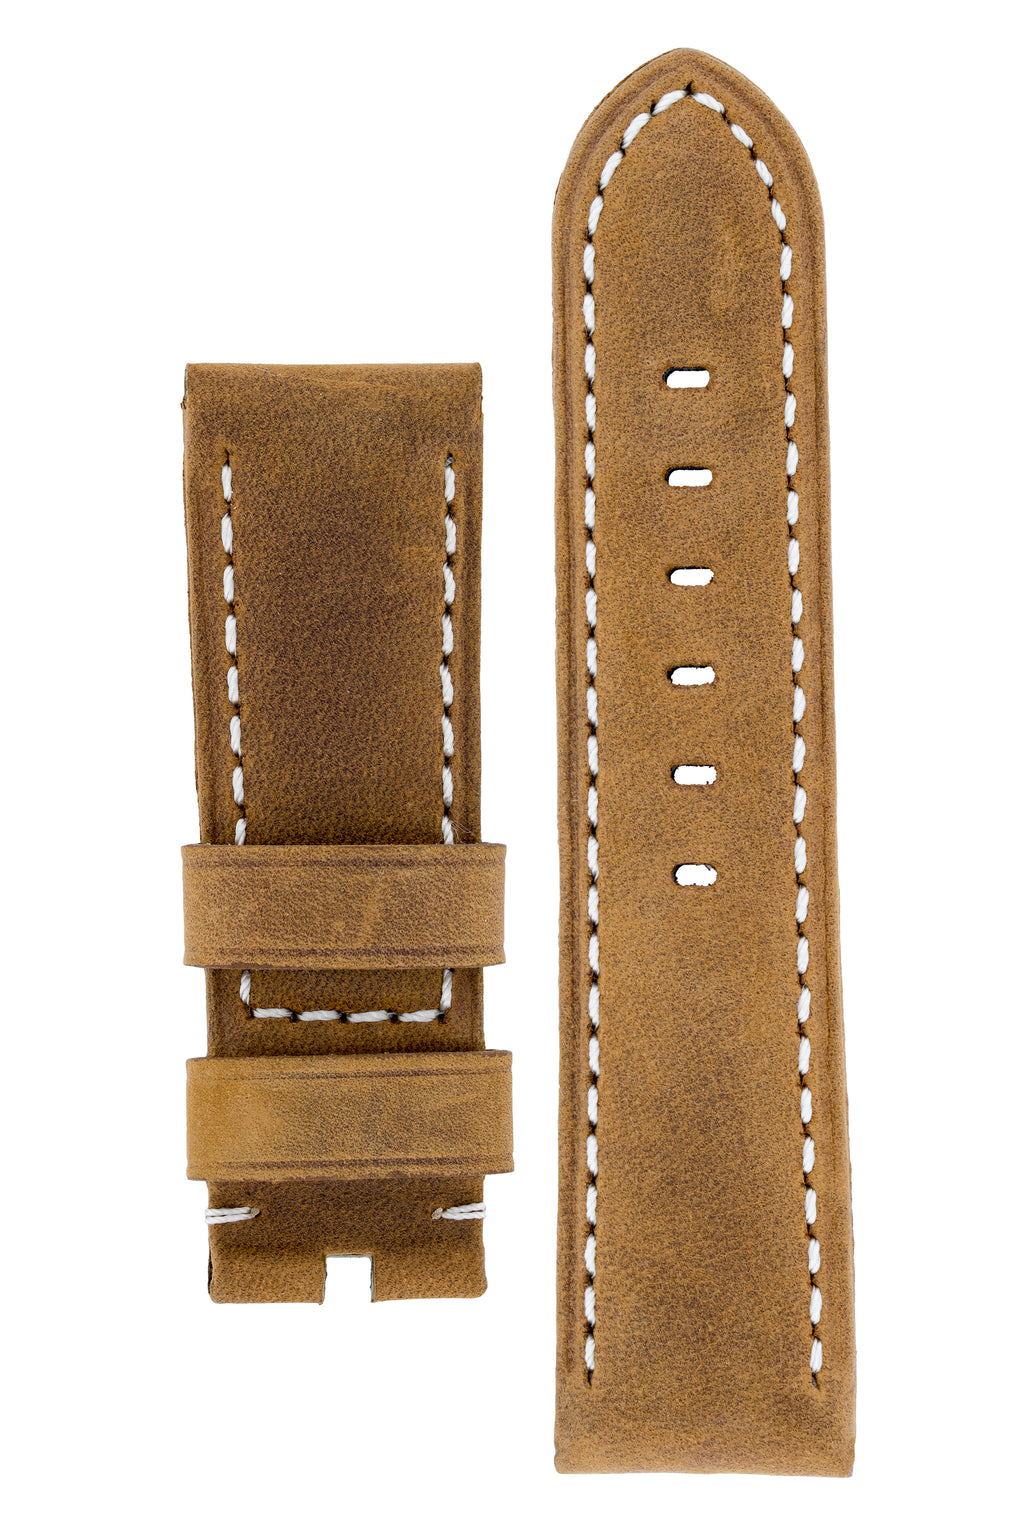 Panerai-Style Vertigo Buffalo Suede Watch Strap in GOLD BROWN